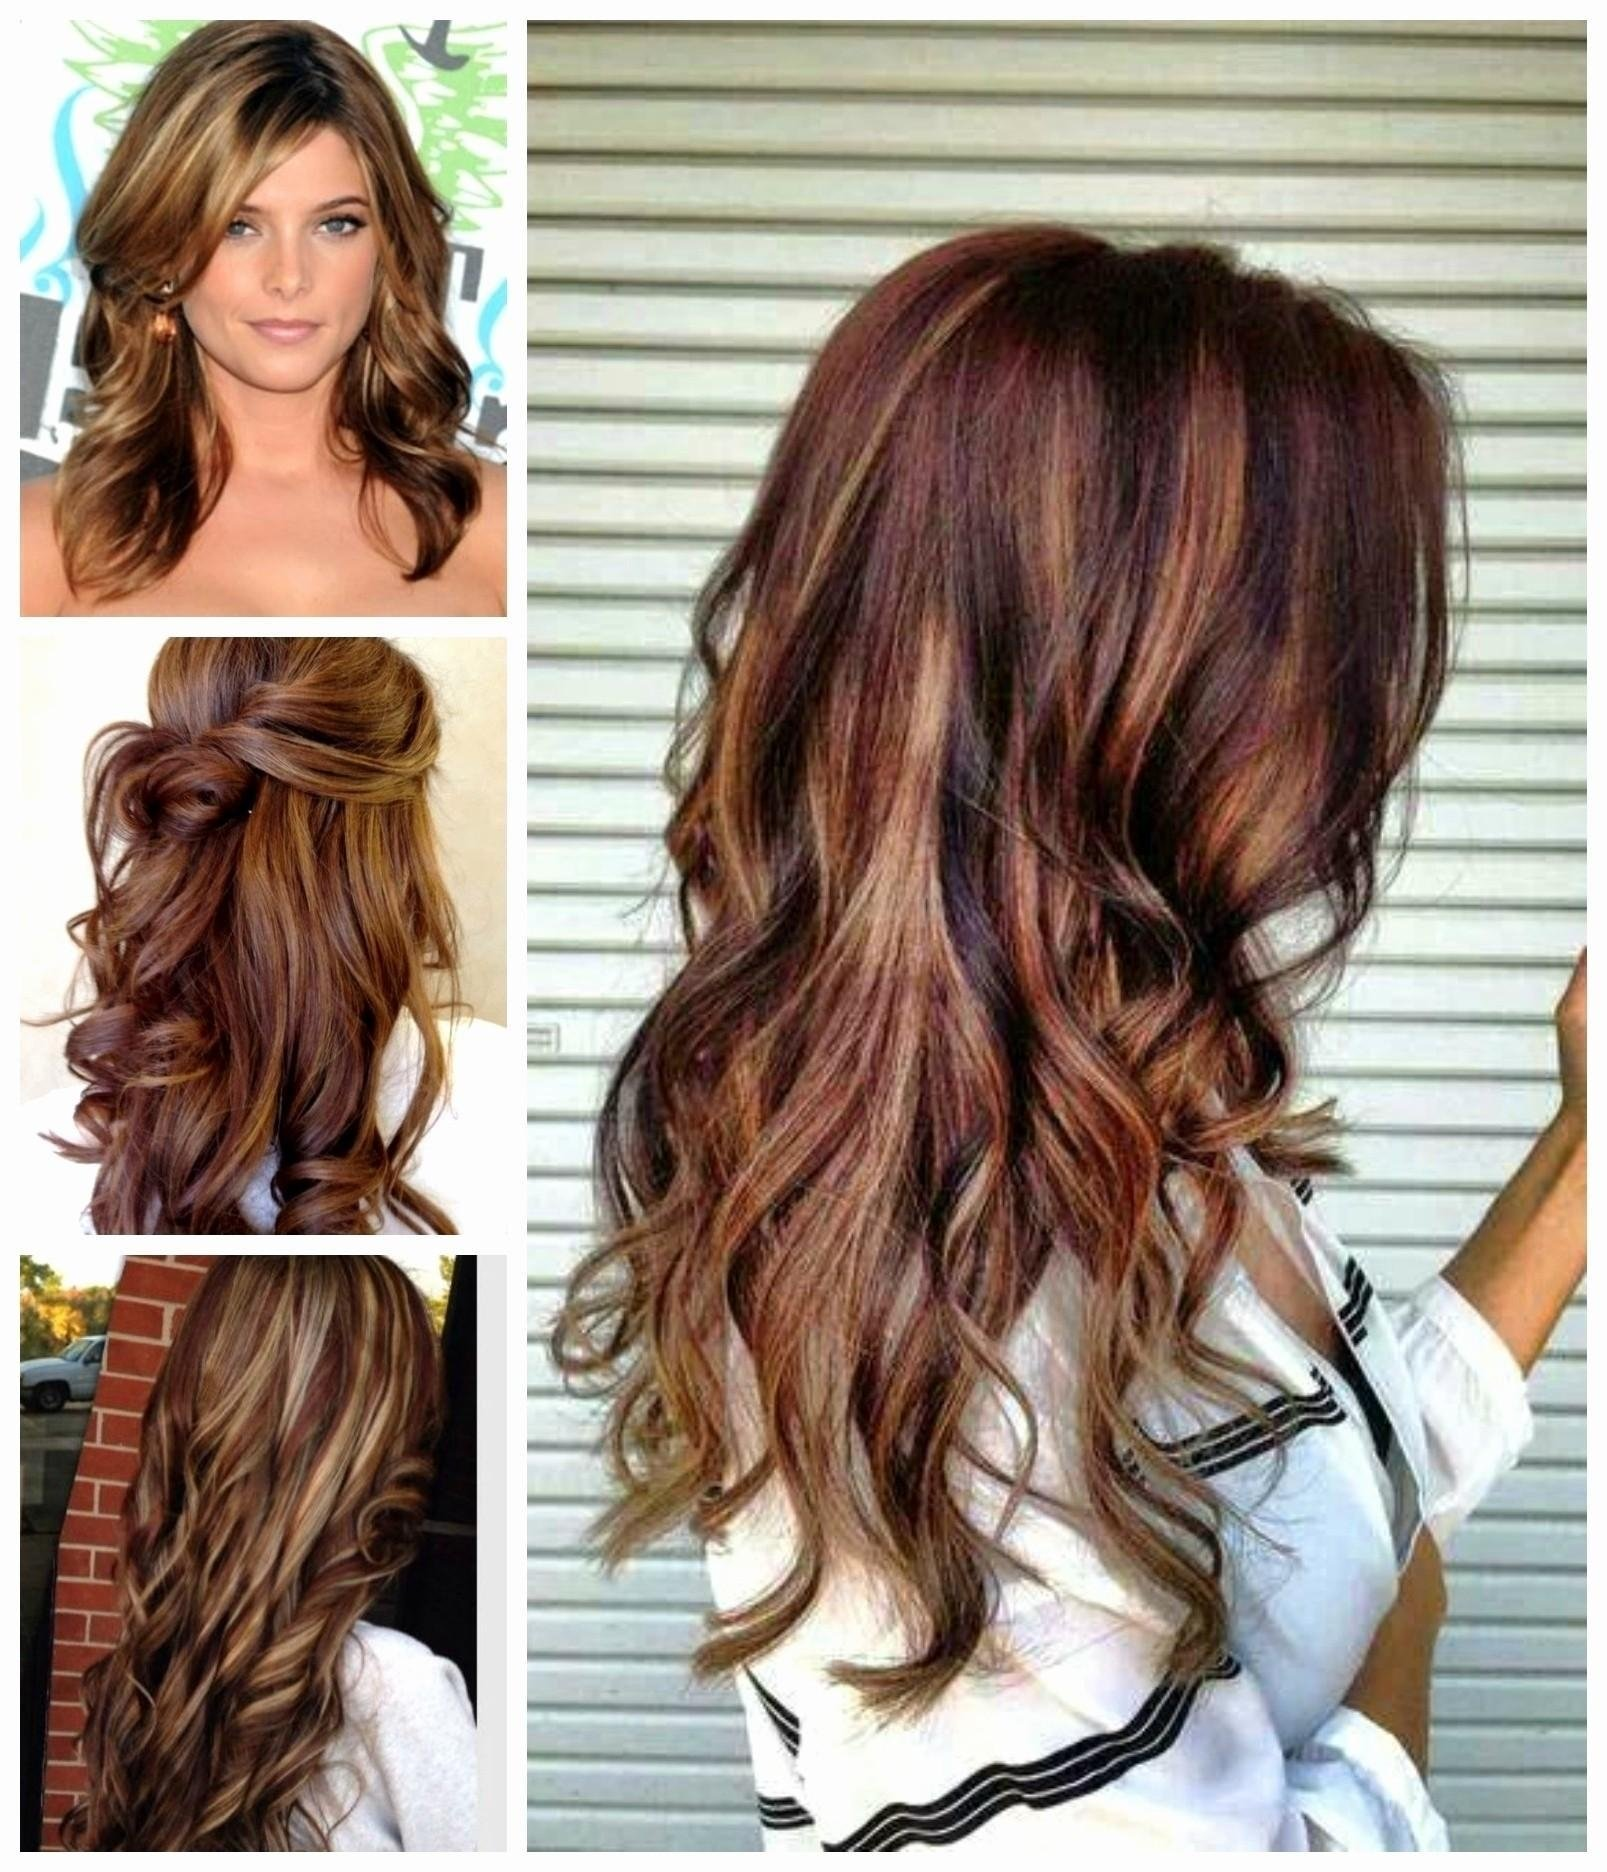 10 Amazing Red Blonde Brown Hair Color Ideas incredible red and blonde hair color ideas luxury light brown with 2020